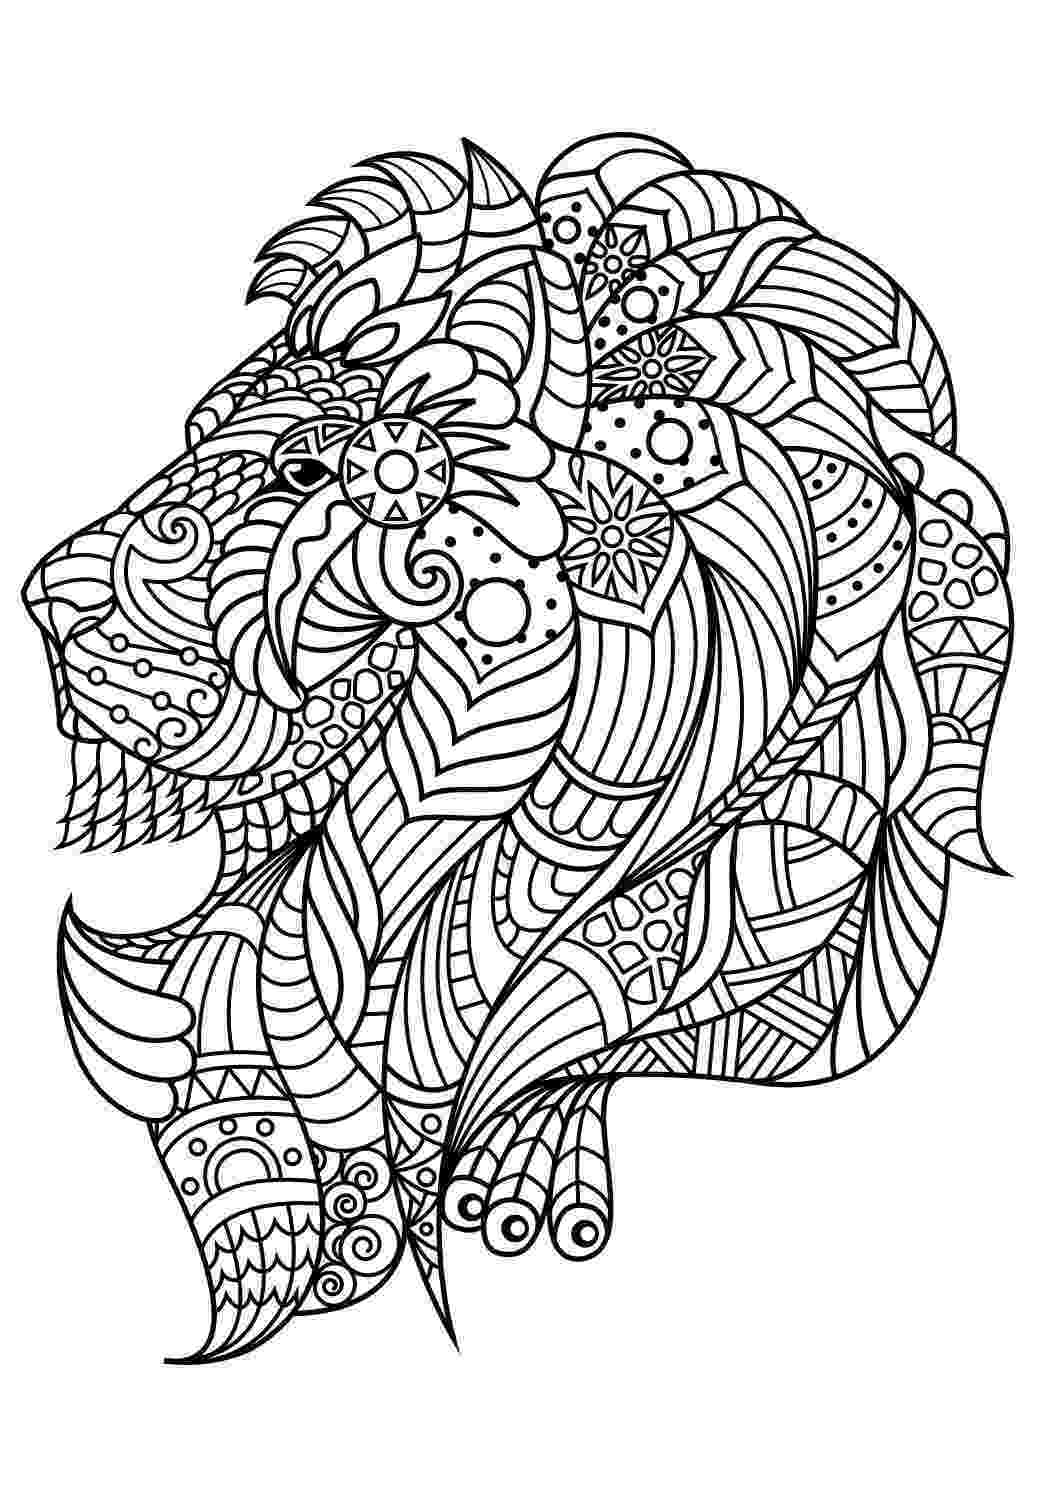 printable coloring pages of animals baby animals coloring pages getcoloringpagescom coloring pages printable animals of